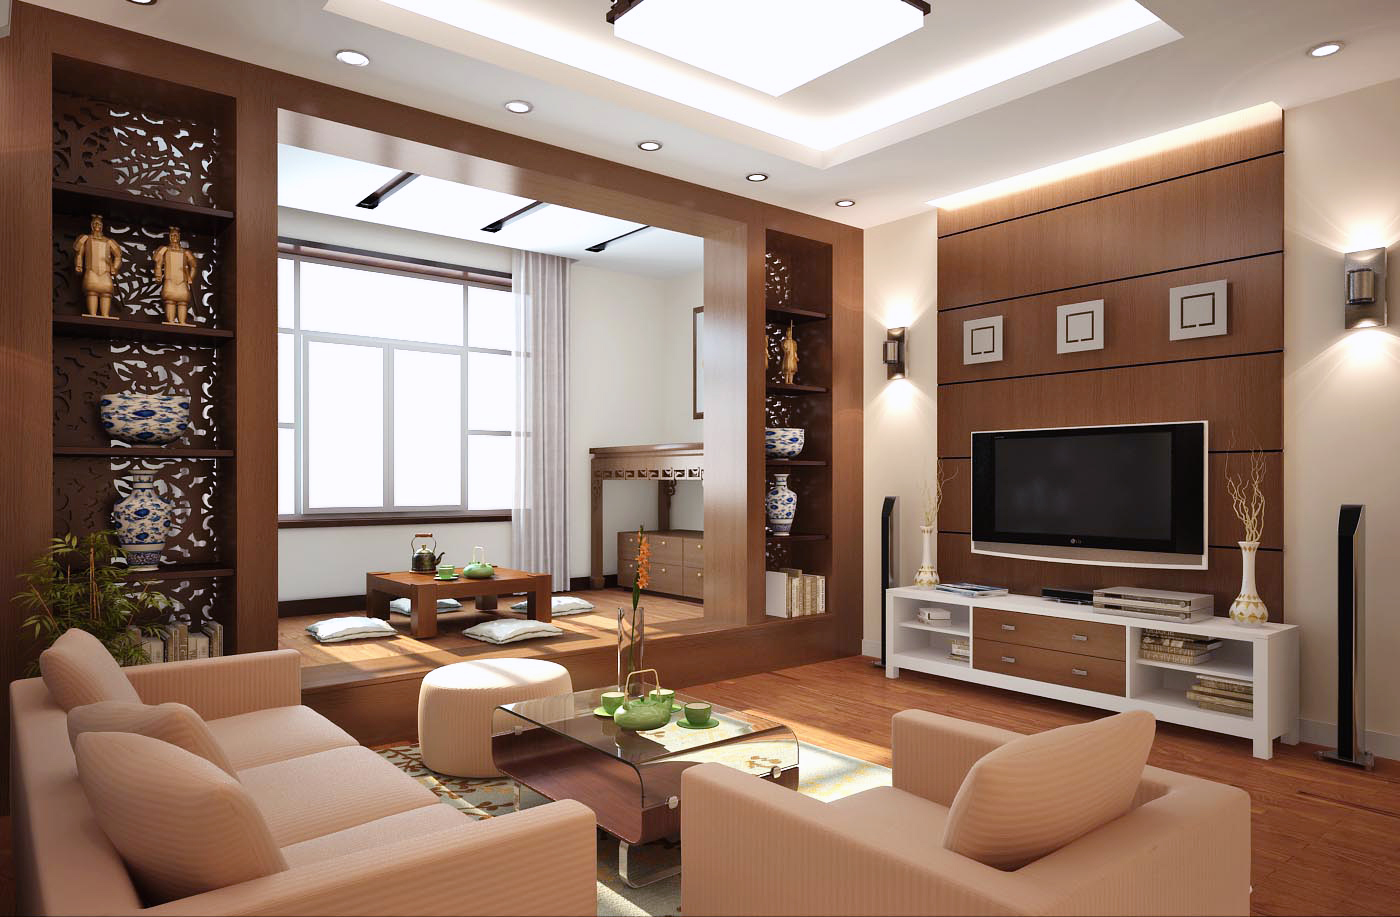 Ordinaire Interior Designers In Bangalore